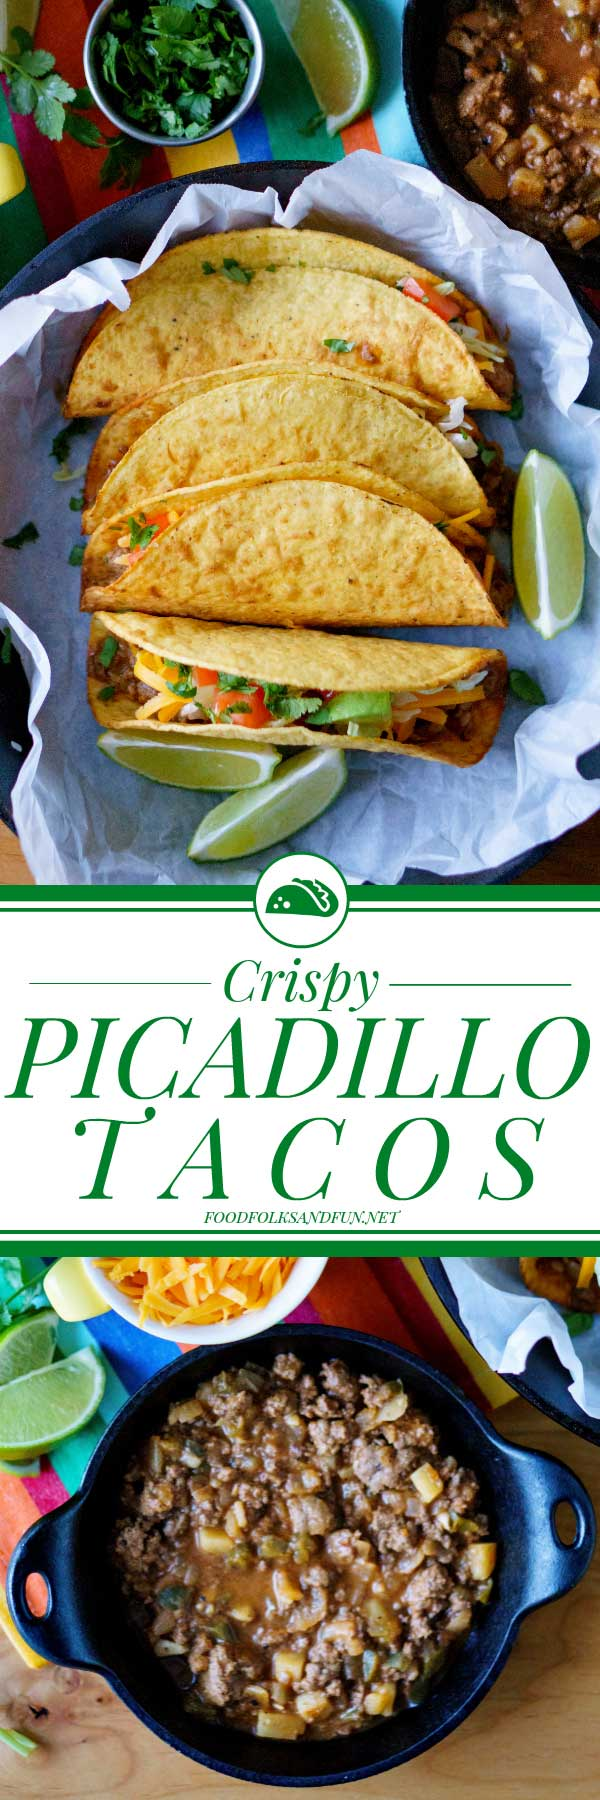 This Picadillo Tacos recipe (Tacos de Picadillo) makes crispy ground beef and potato tacos that are so easy to make. This recipe serves 10 and costs $11.14 to make. That's just $1.11 per serving!  via @foodfolksandfun